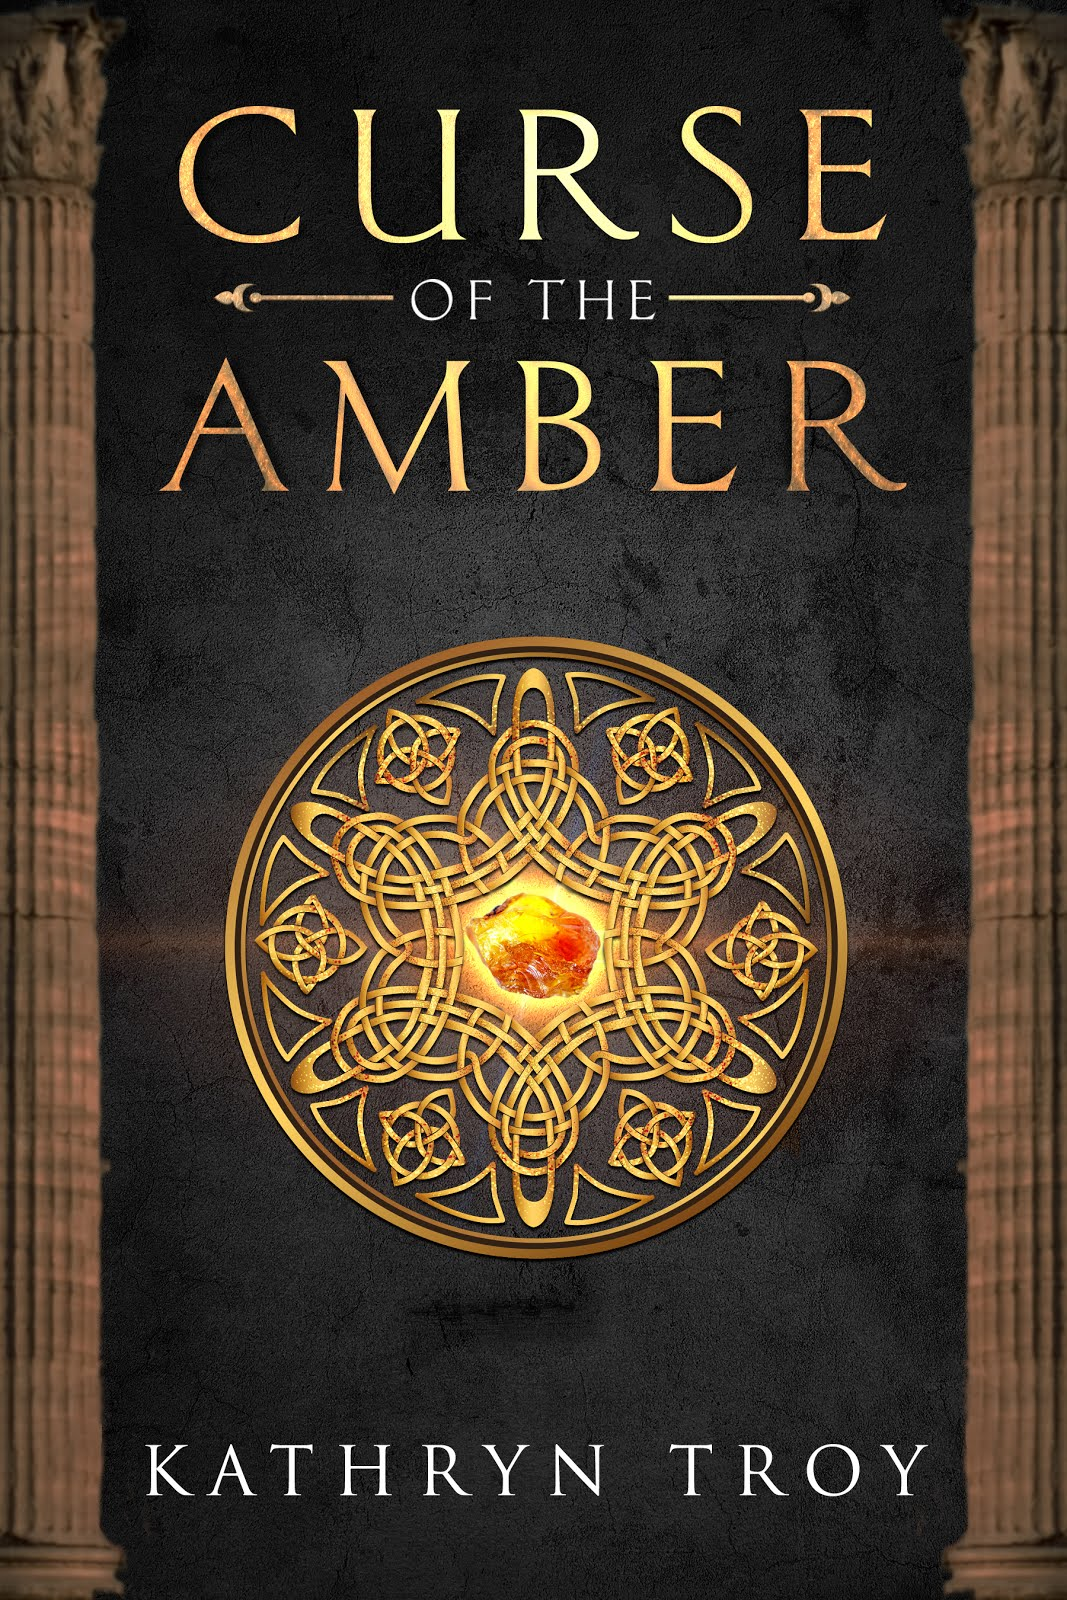 Curse of the Amber - Available Now!